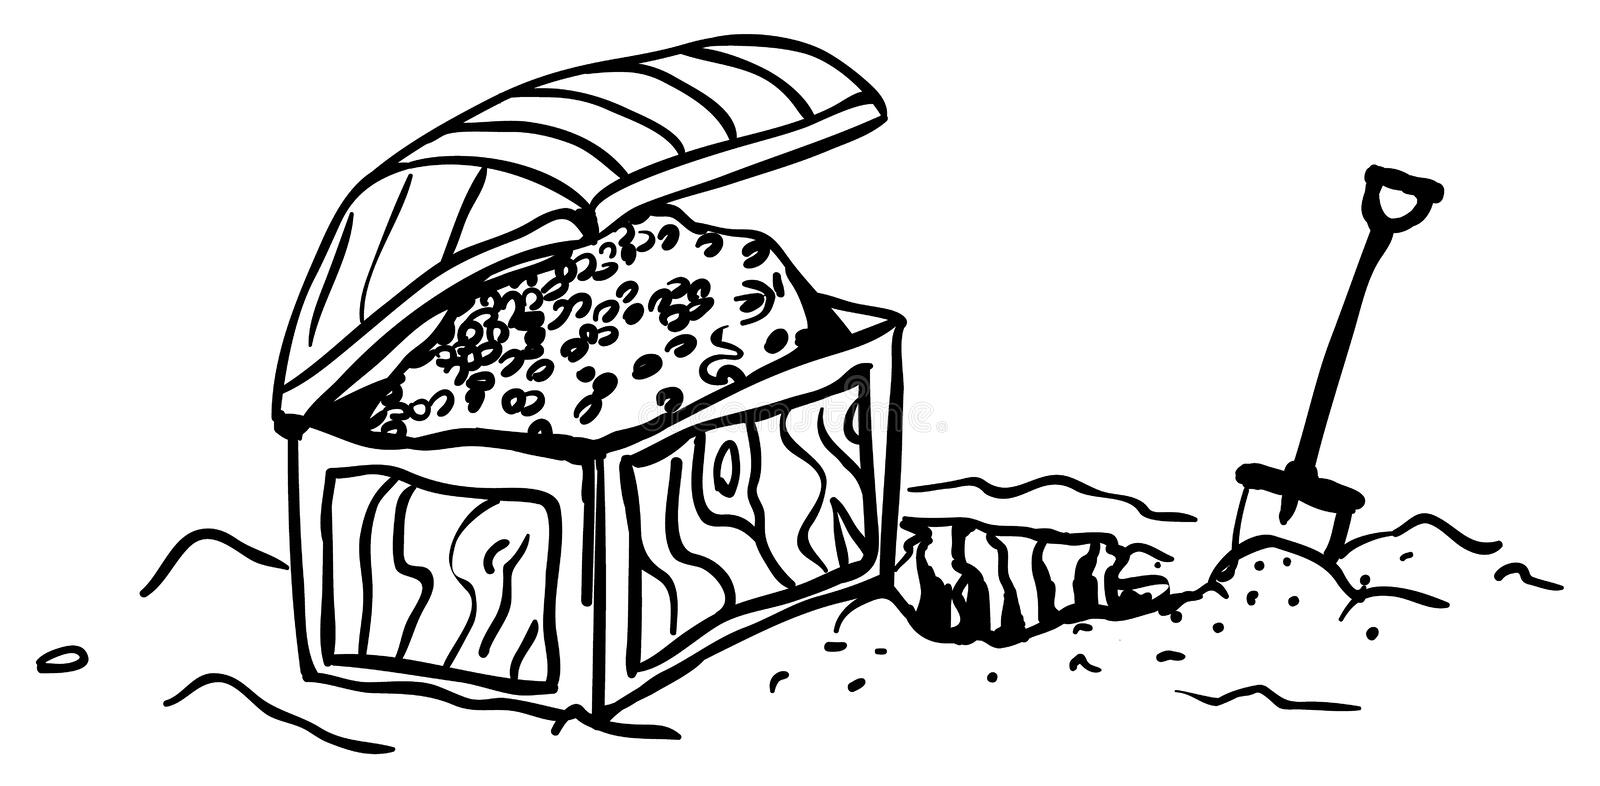 Treasure Chest Dig. Cartoon line drawing, horizontal, vector illustration, isolated stock illustration